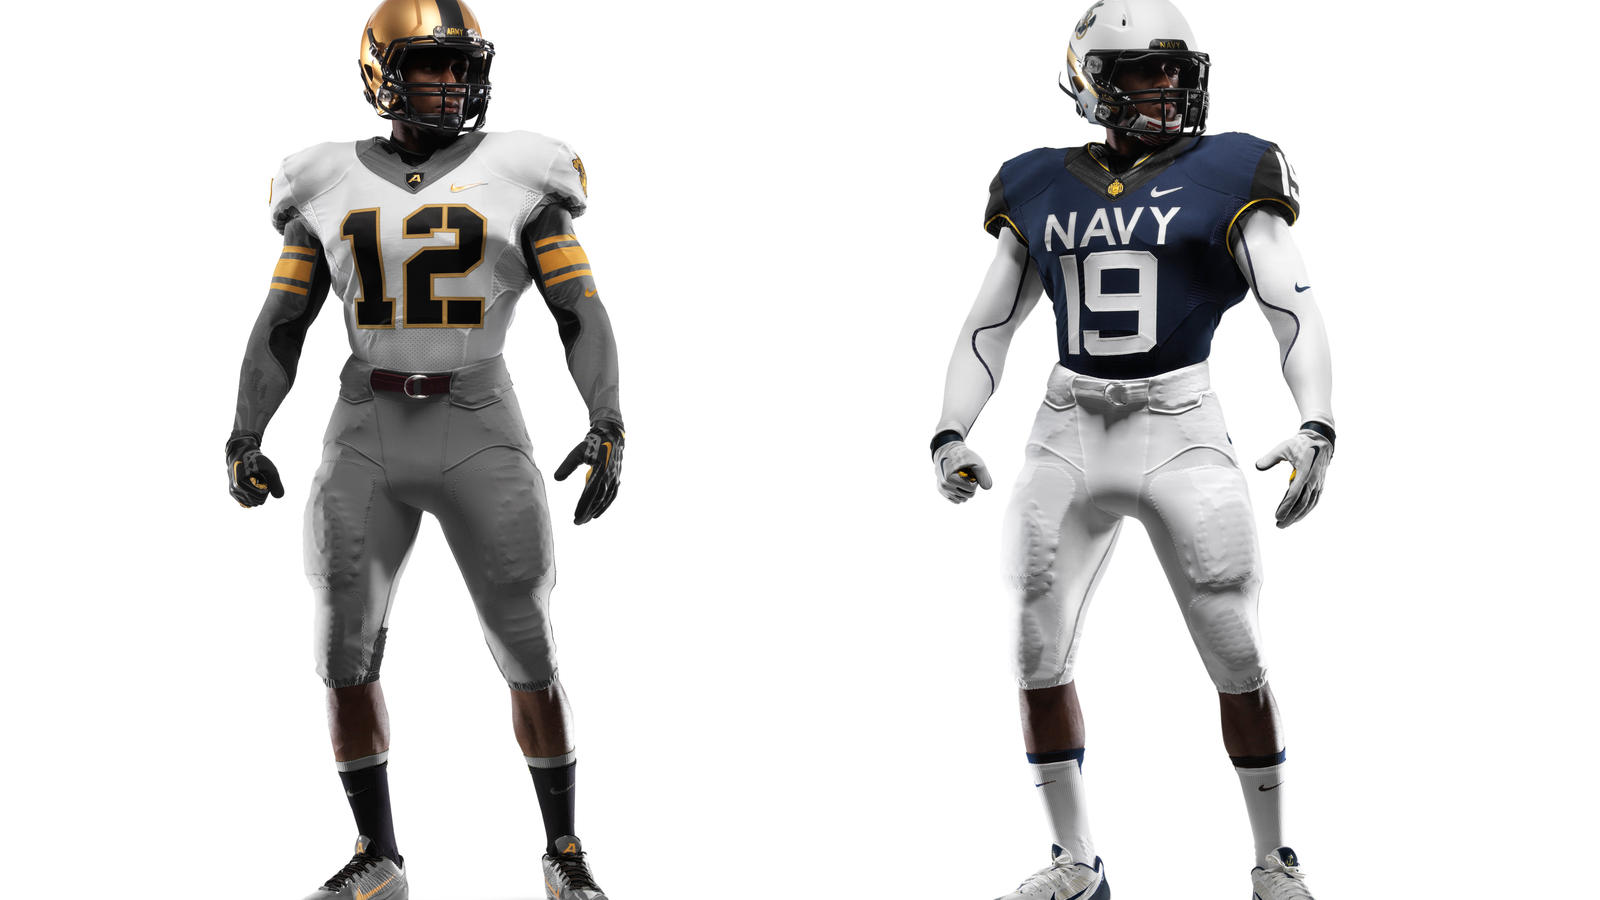 nike-football-army-navy-uniforms